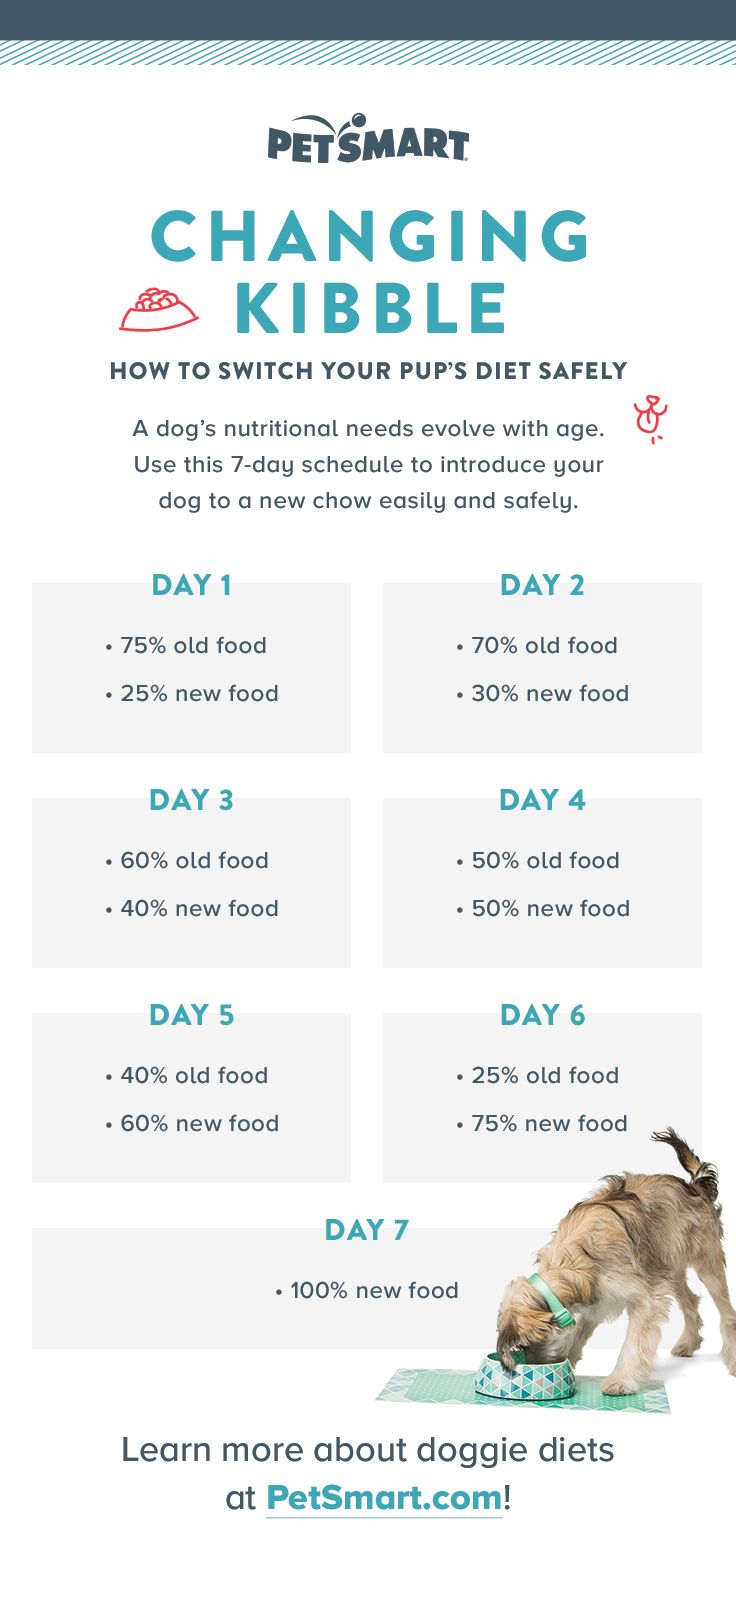 Are you transitioning your puppy from one food to another, or is your puppy ready to transition from puppy food to adult food? This handy chart will help you reduce the chance of digestion distress.